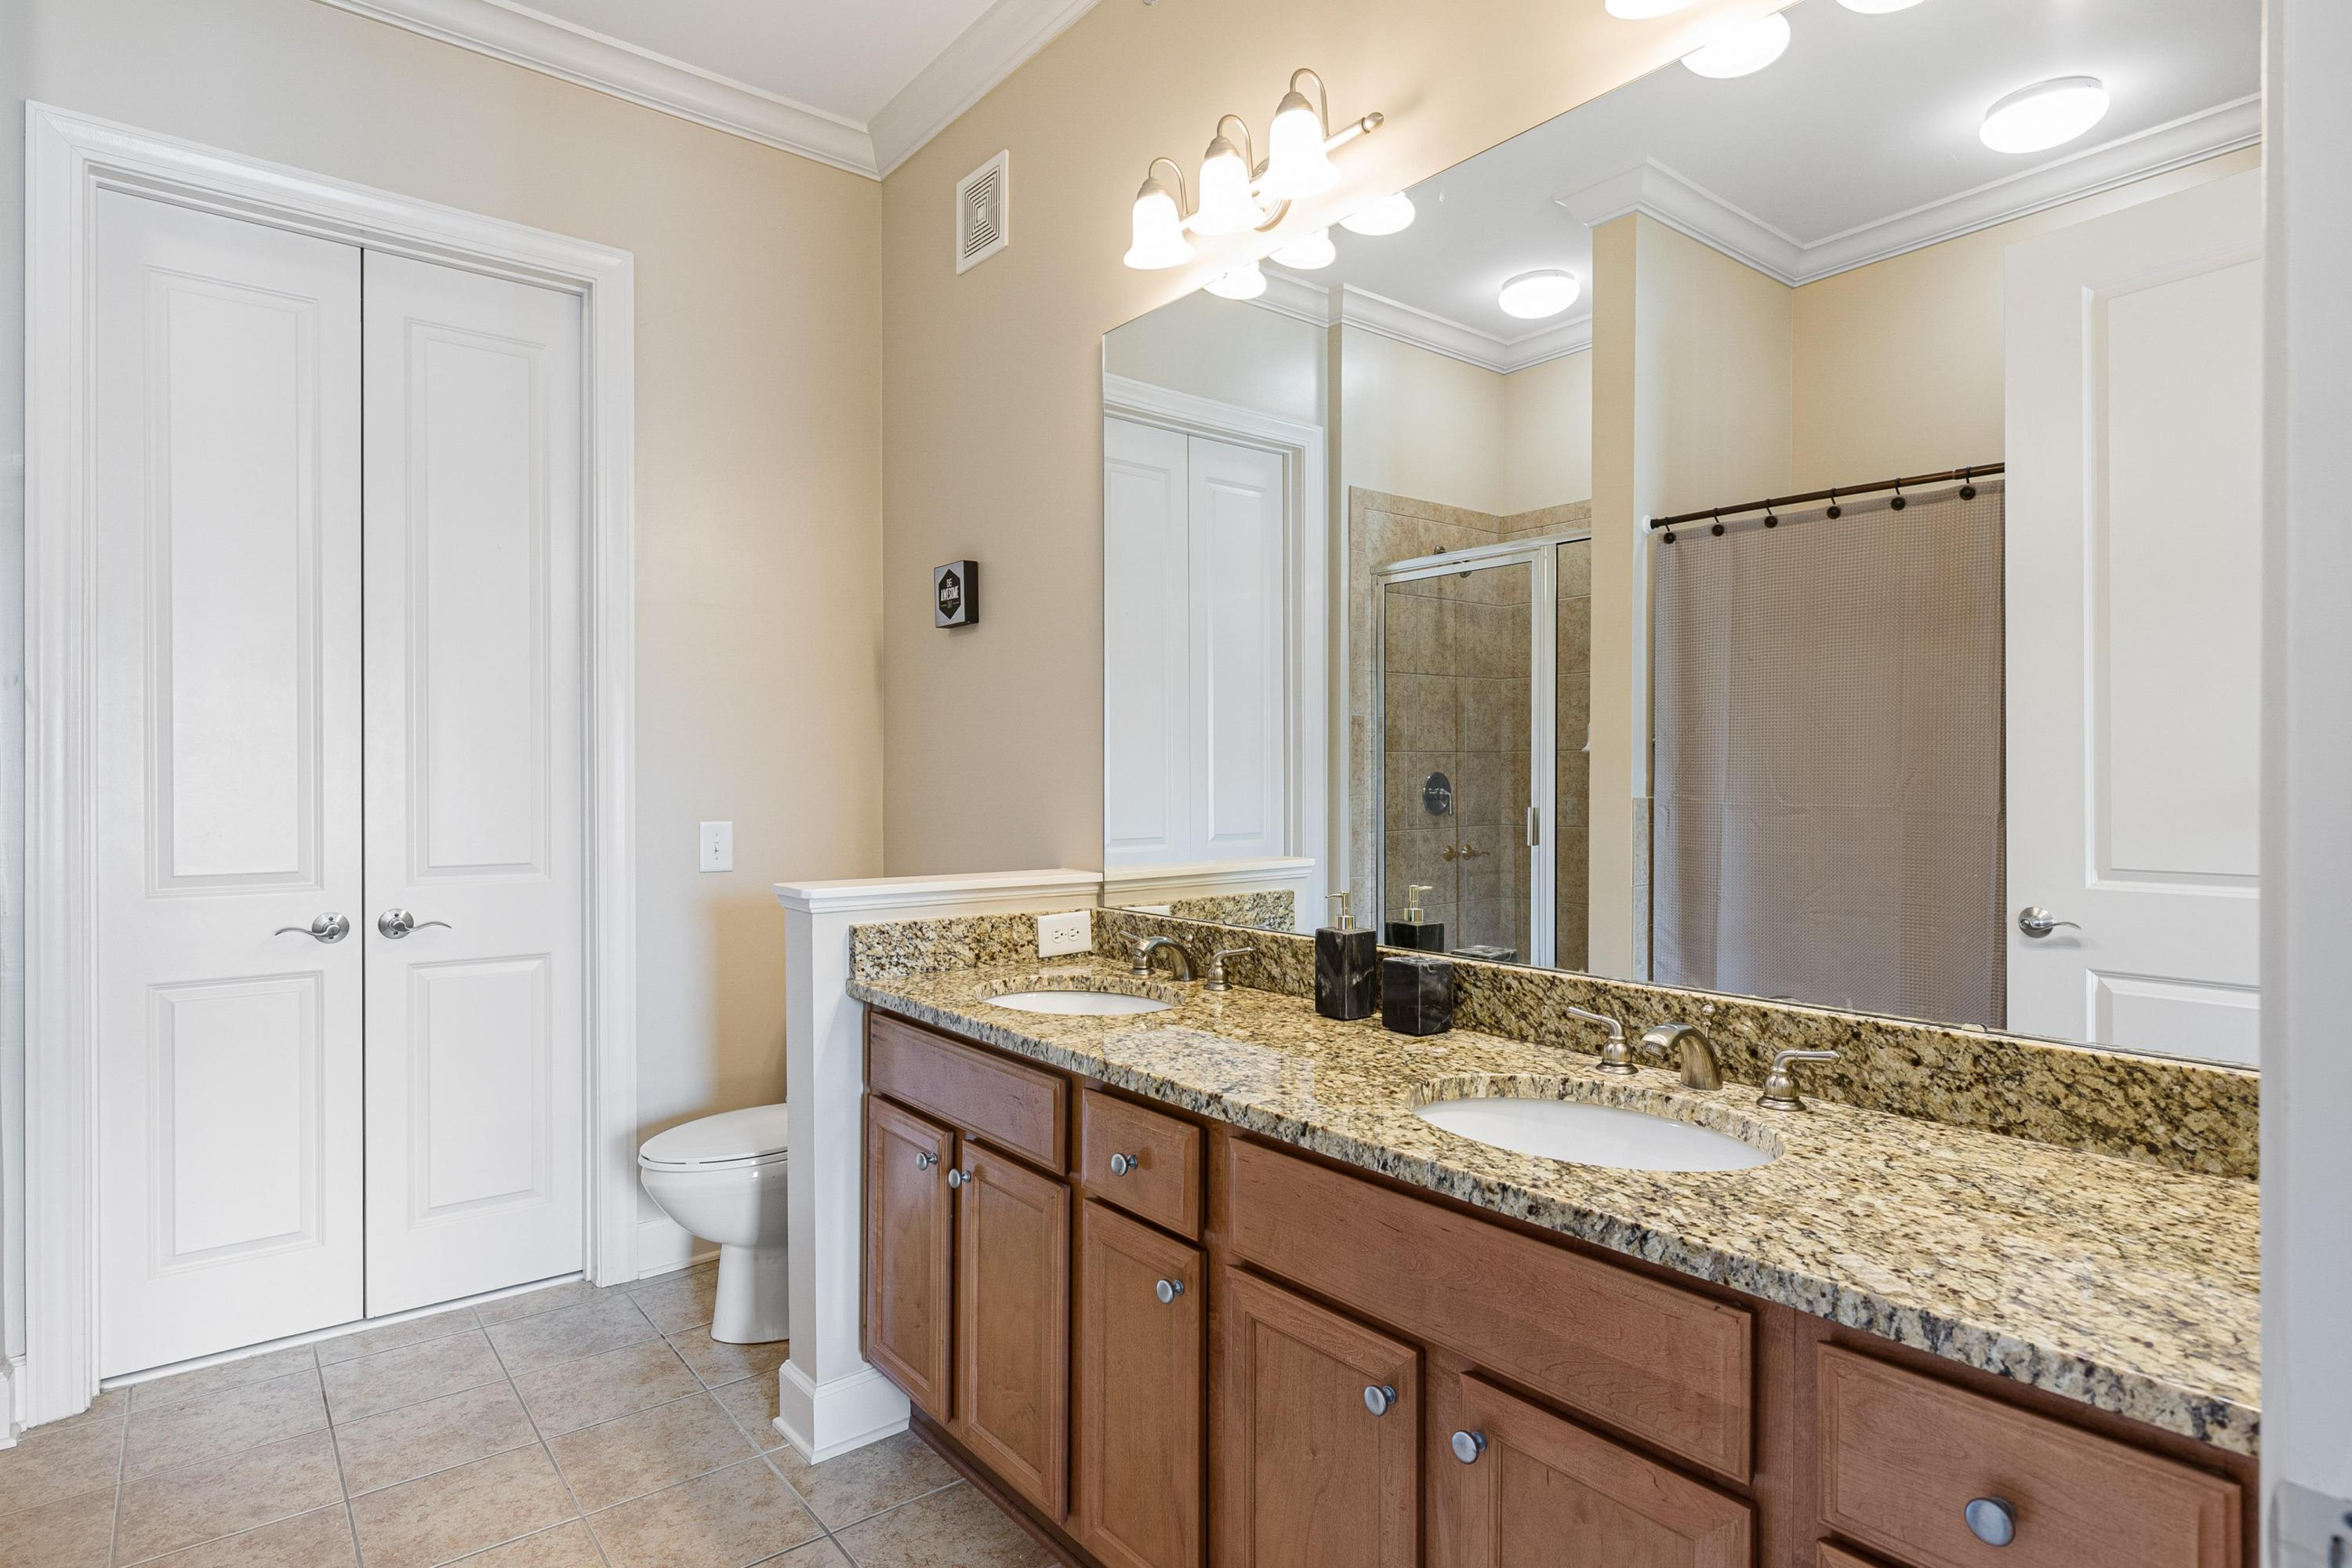 Pier View Homes For Sale - 135 Pier View, Charleston, SC - 12